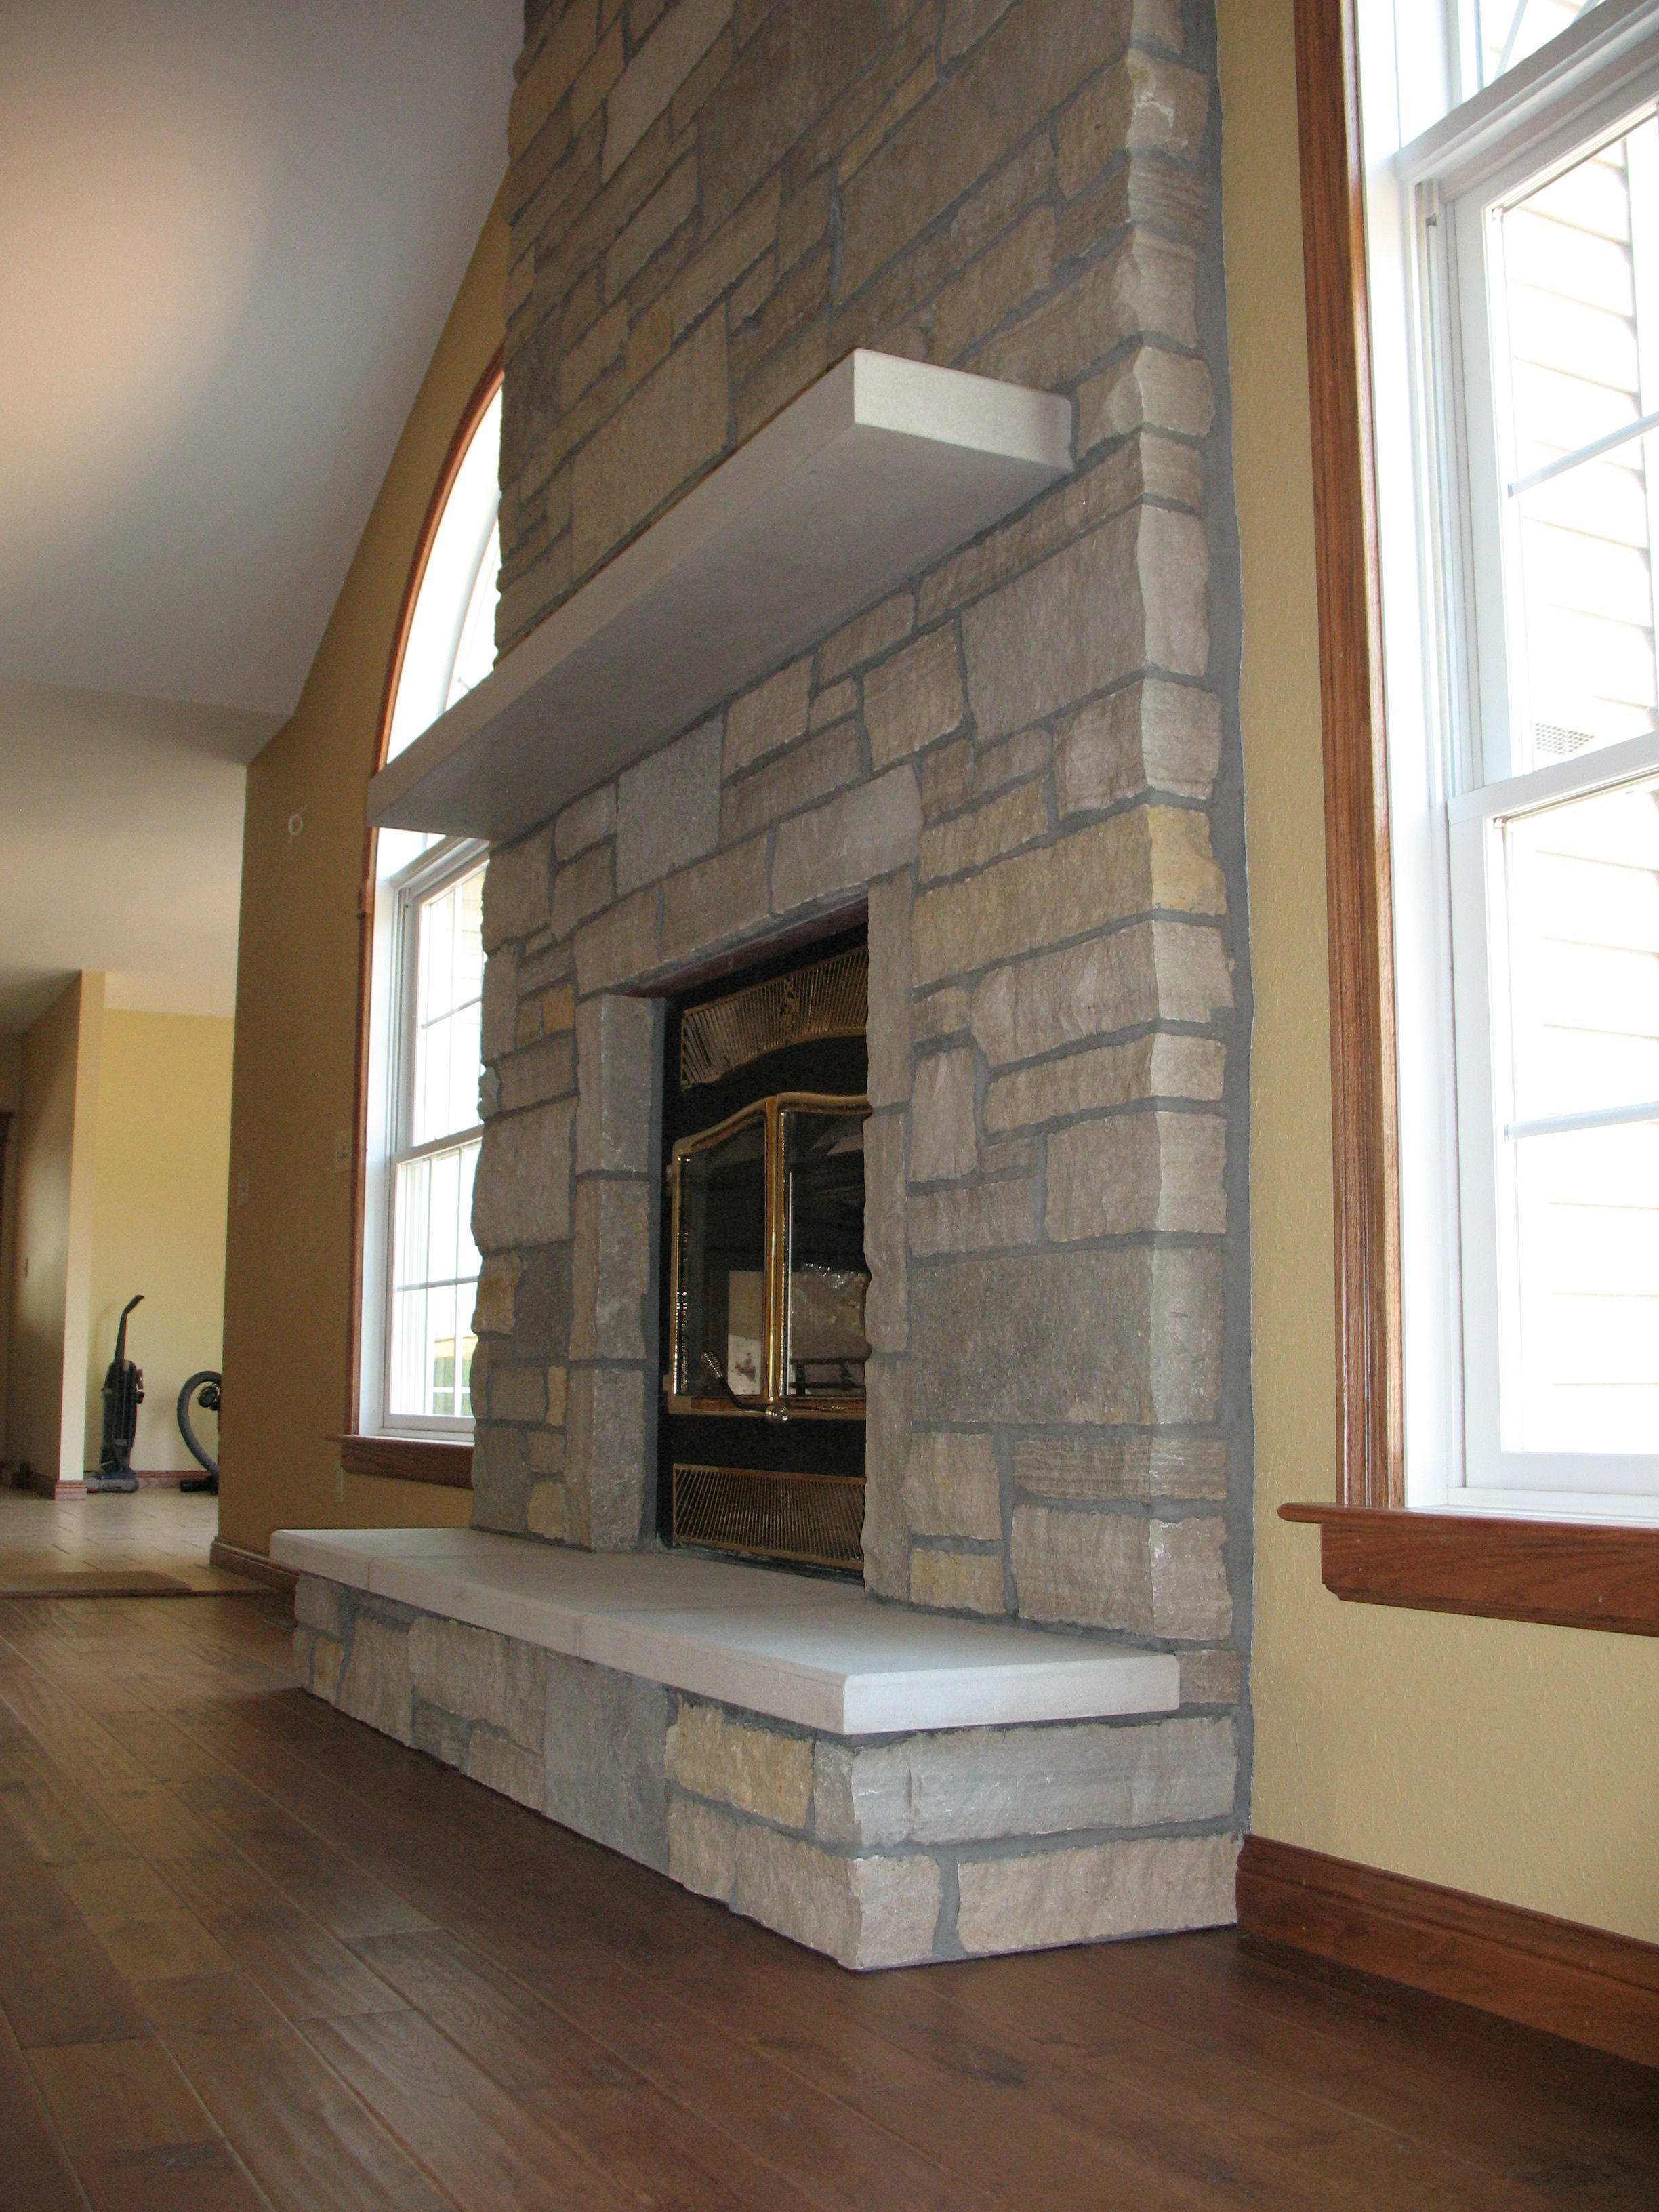 Stone Fireplace Renovation (Image 10 of 12)